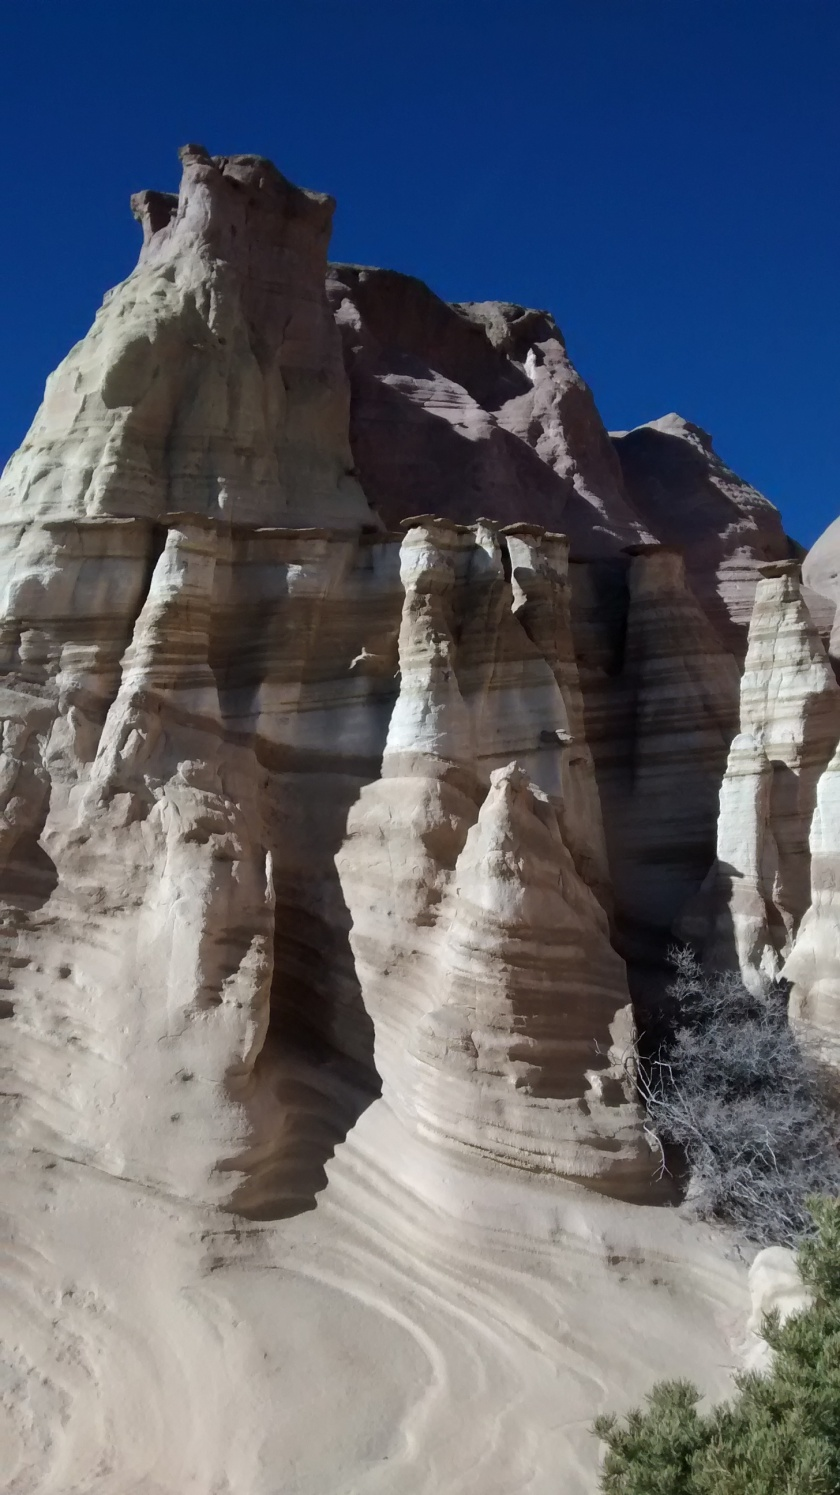 Reminded us of some of the formations at Tent Rocks.